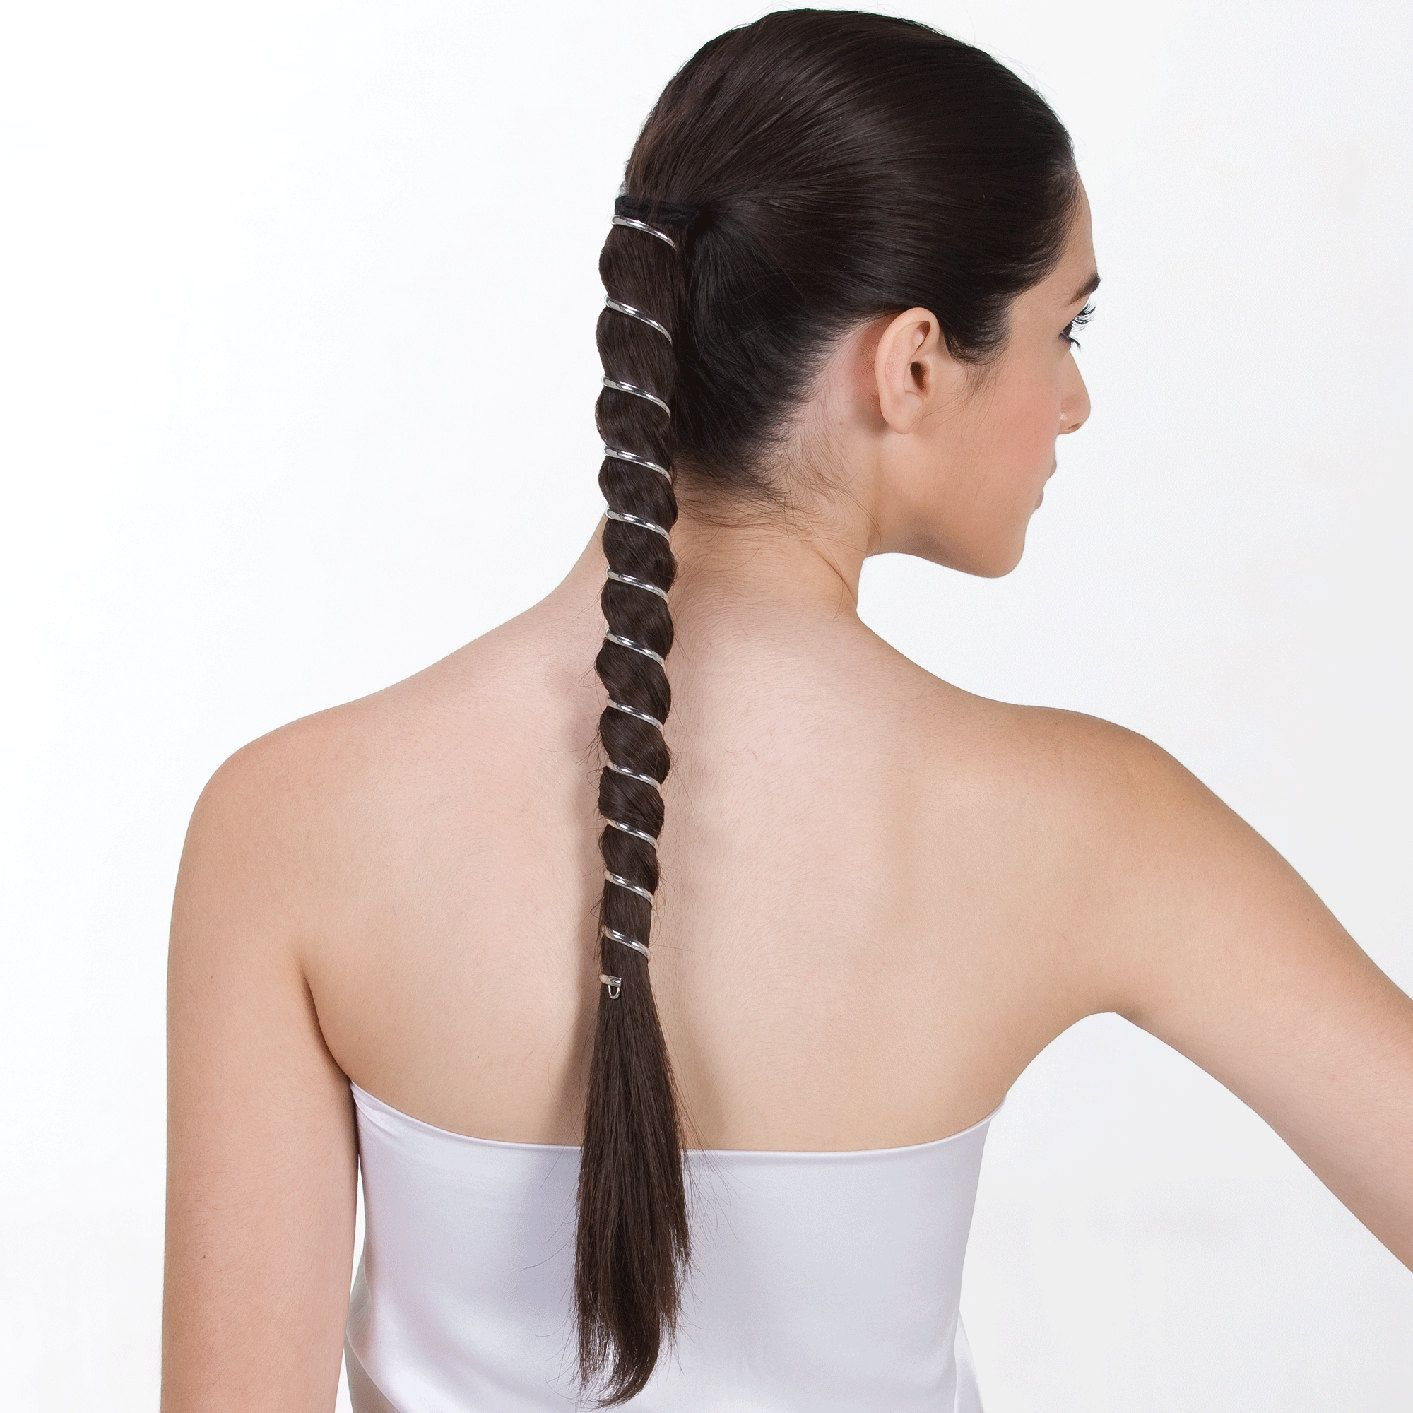 37++ Natural hair ponytail holder ideas in 2021